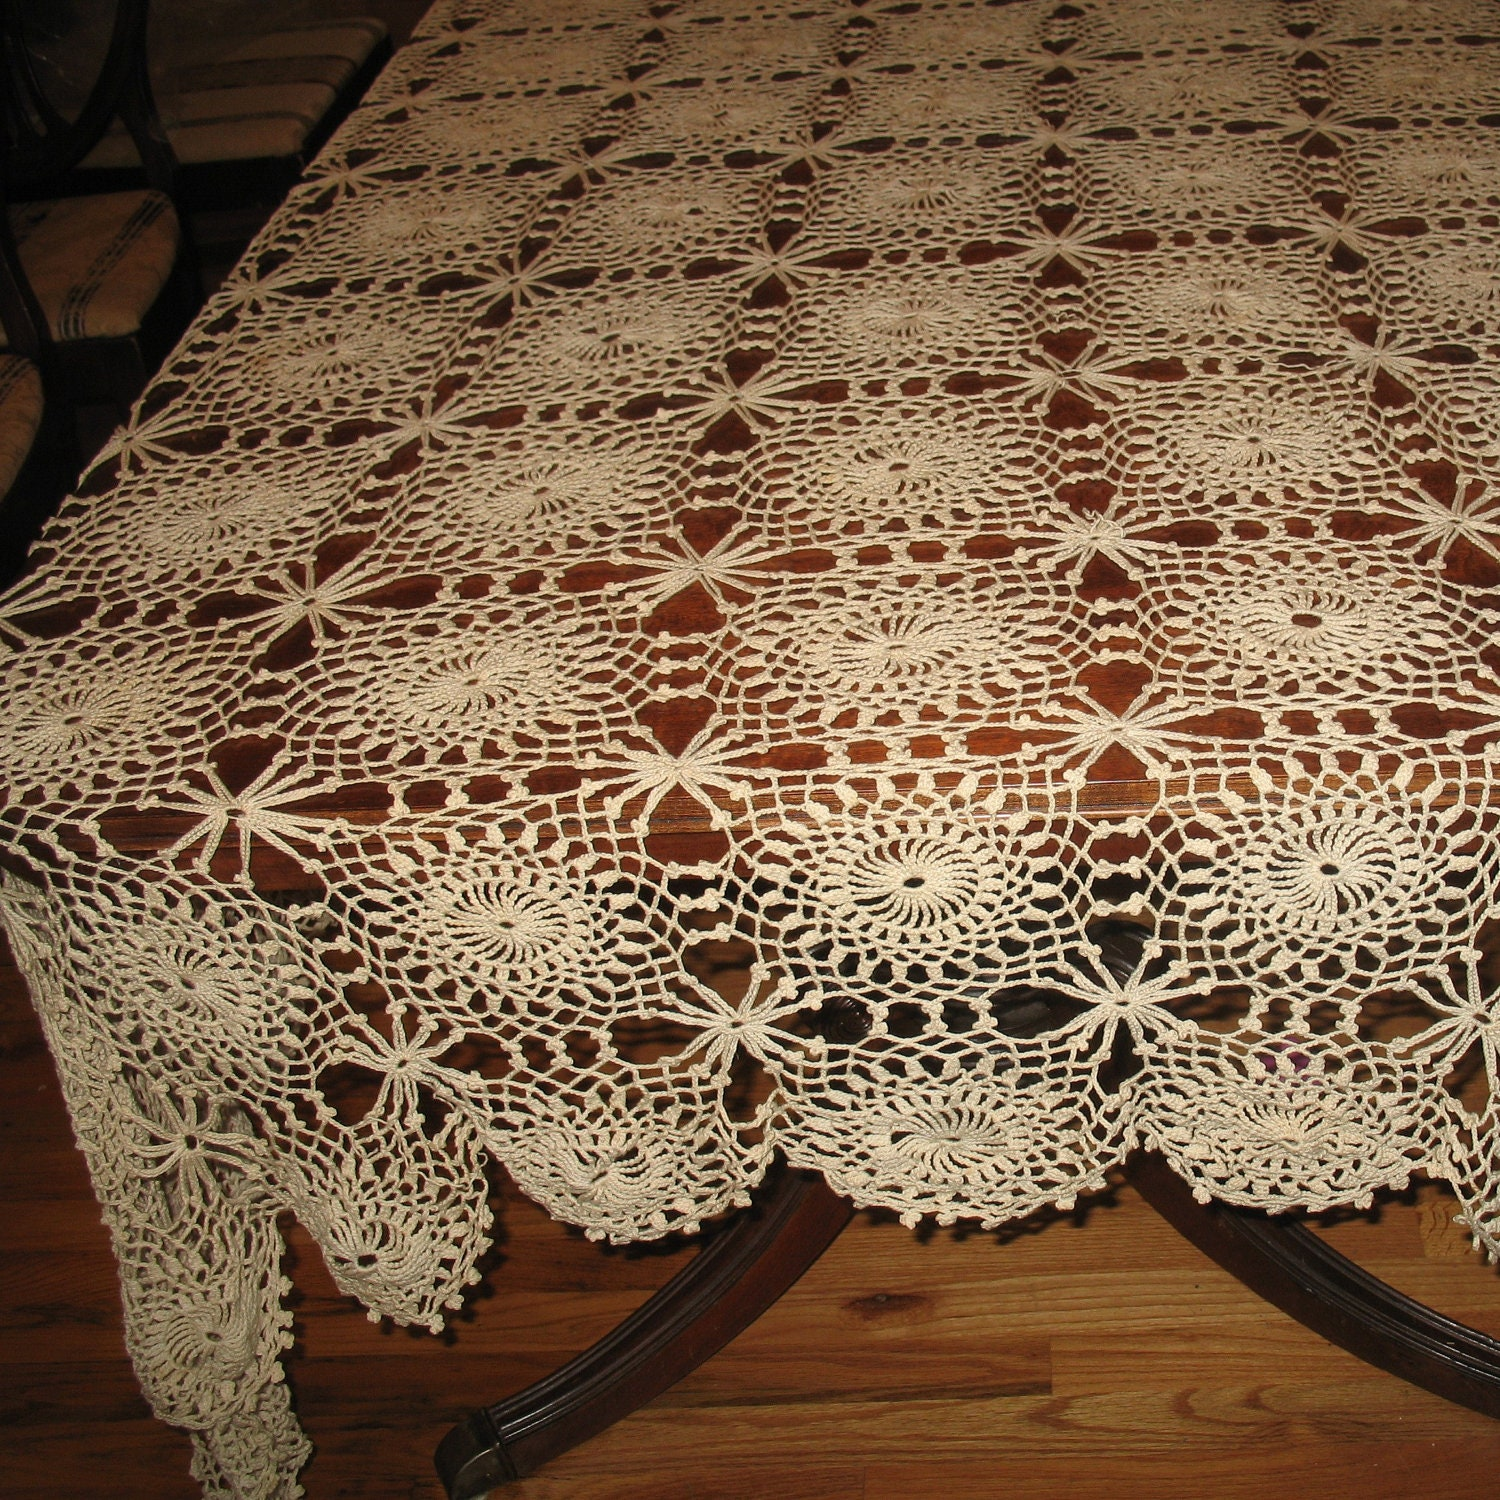 vintage hand crocheted tablecloth lacy crochet tablecloth. Black Bedroom Furniture Sets. Home Design Ideas